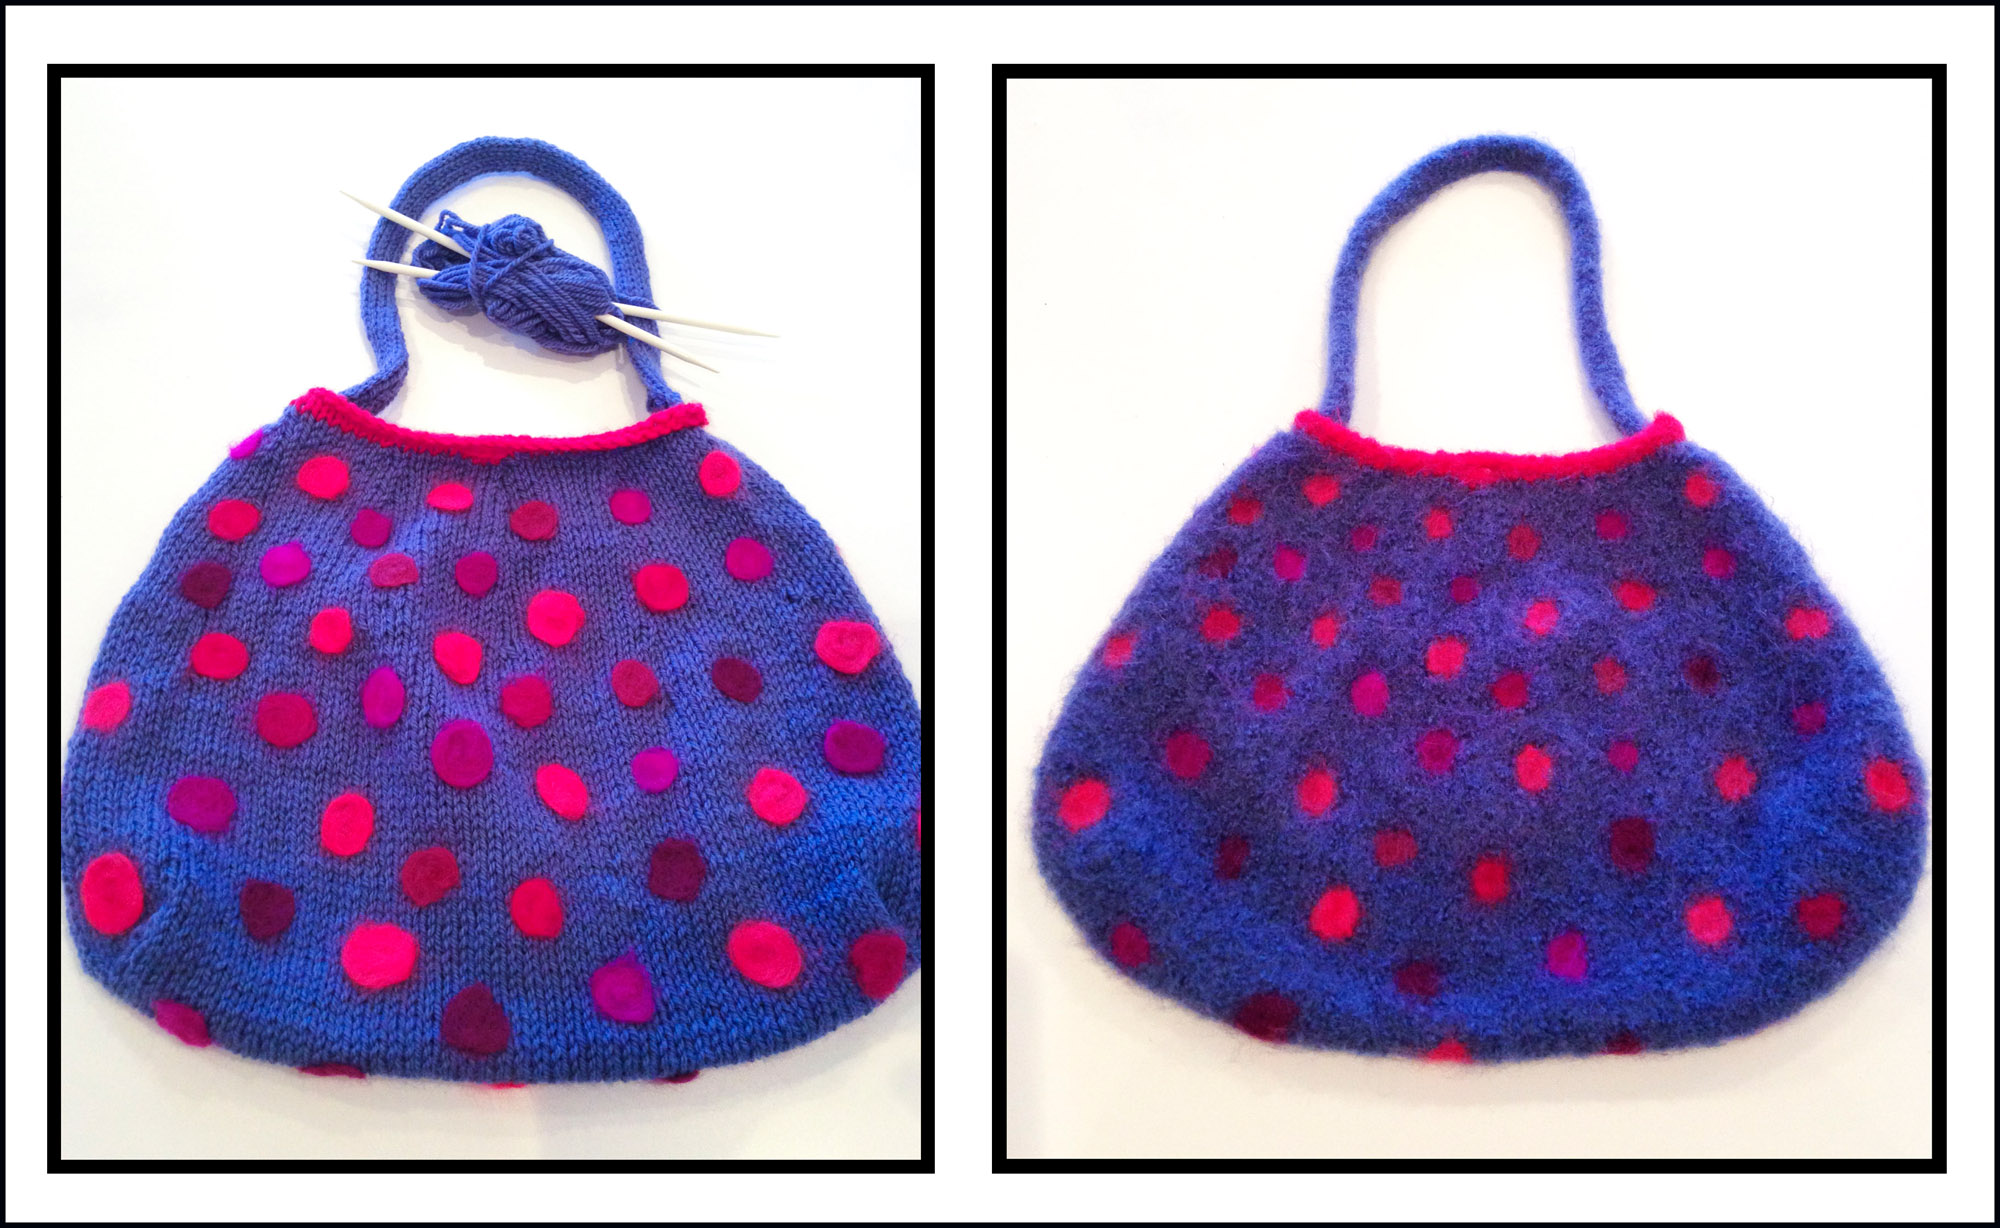 Before and after: Telena's knitted bag turned into a cheerful spotty bag.